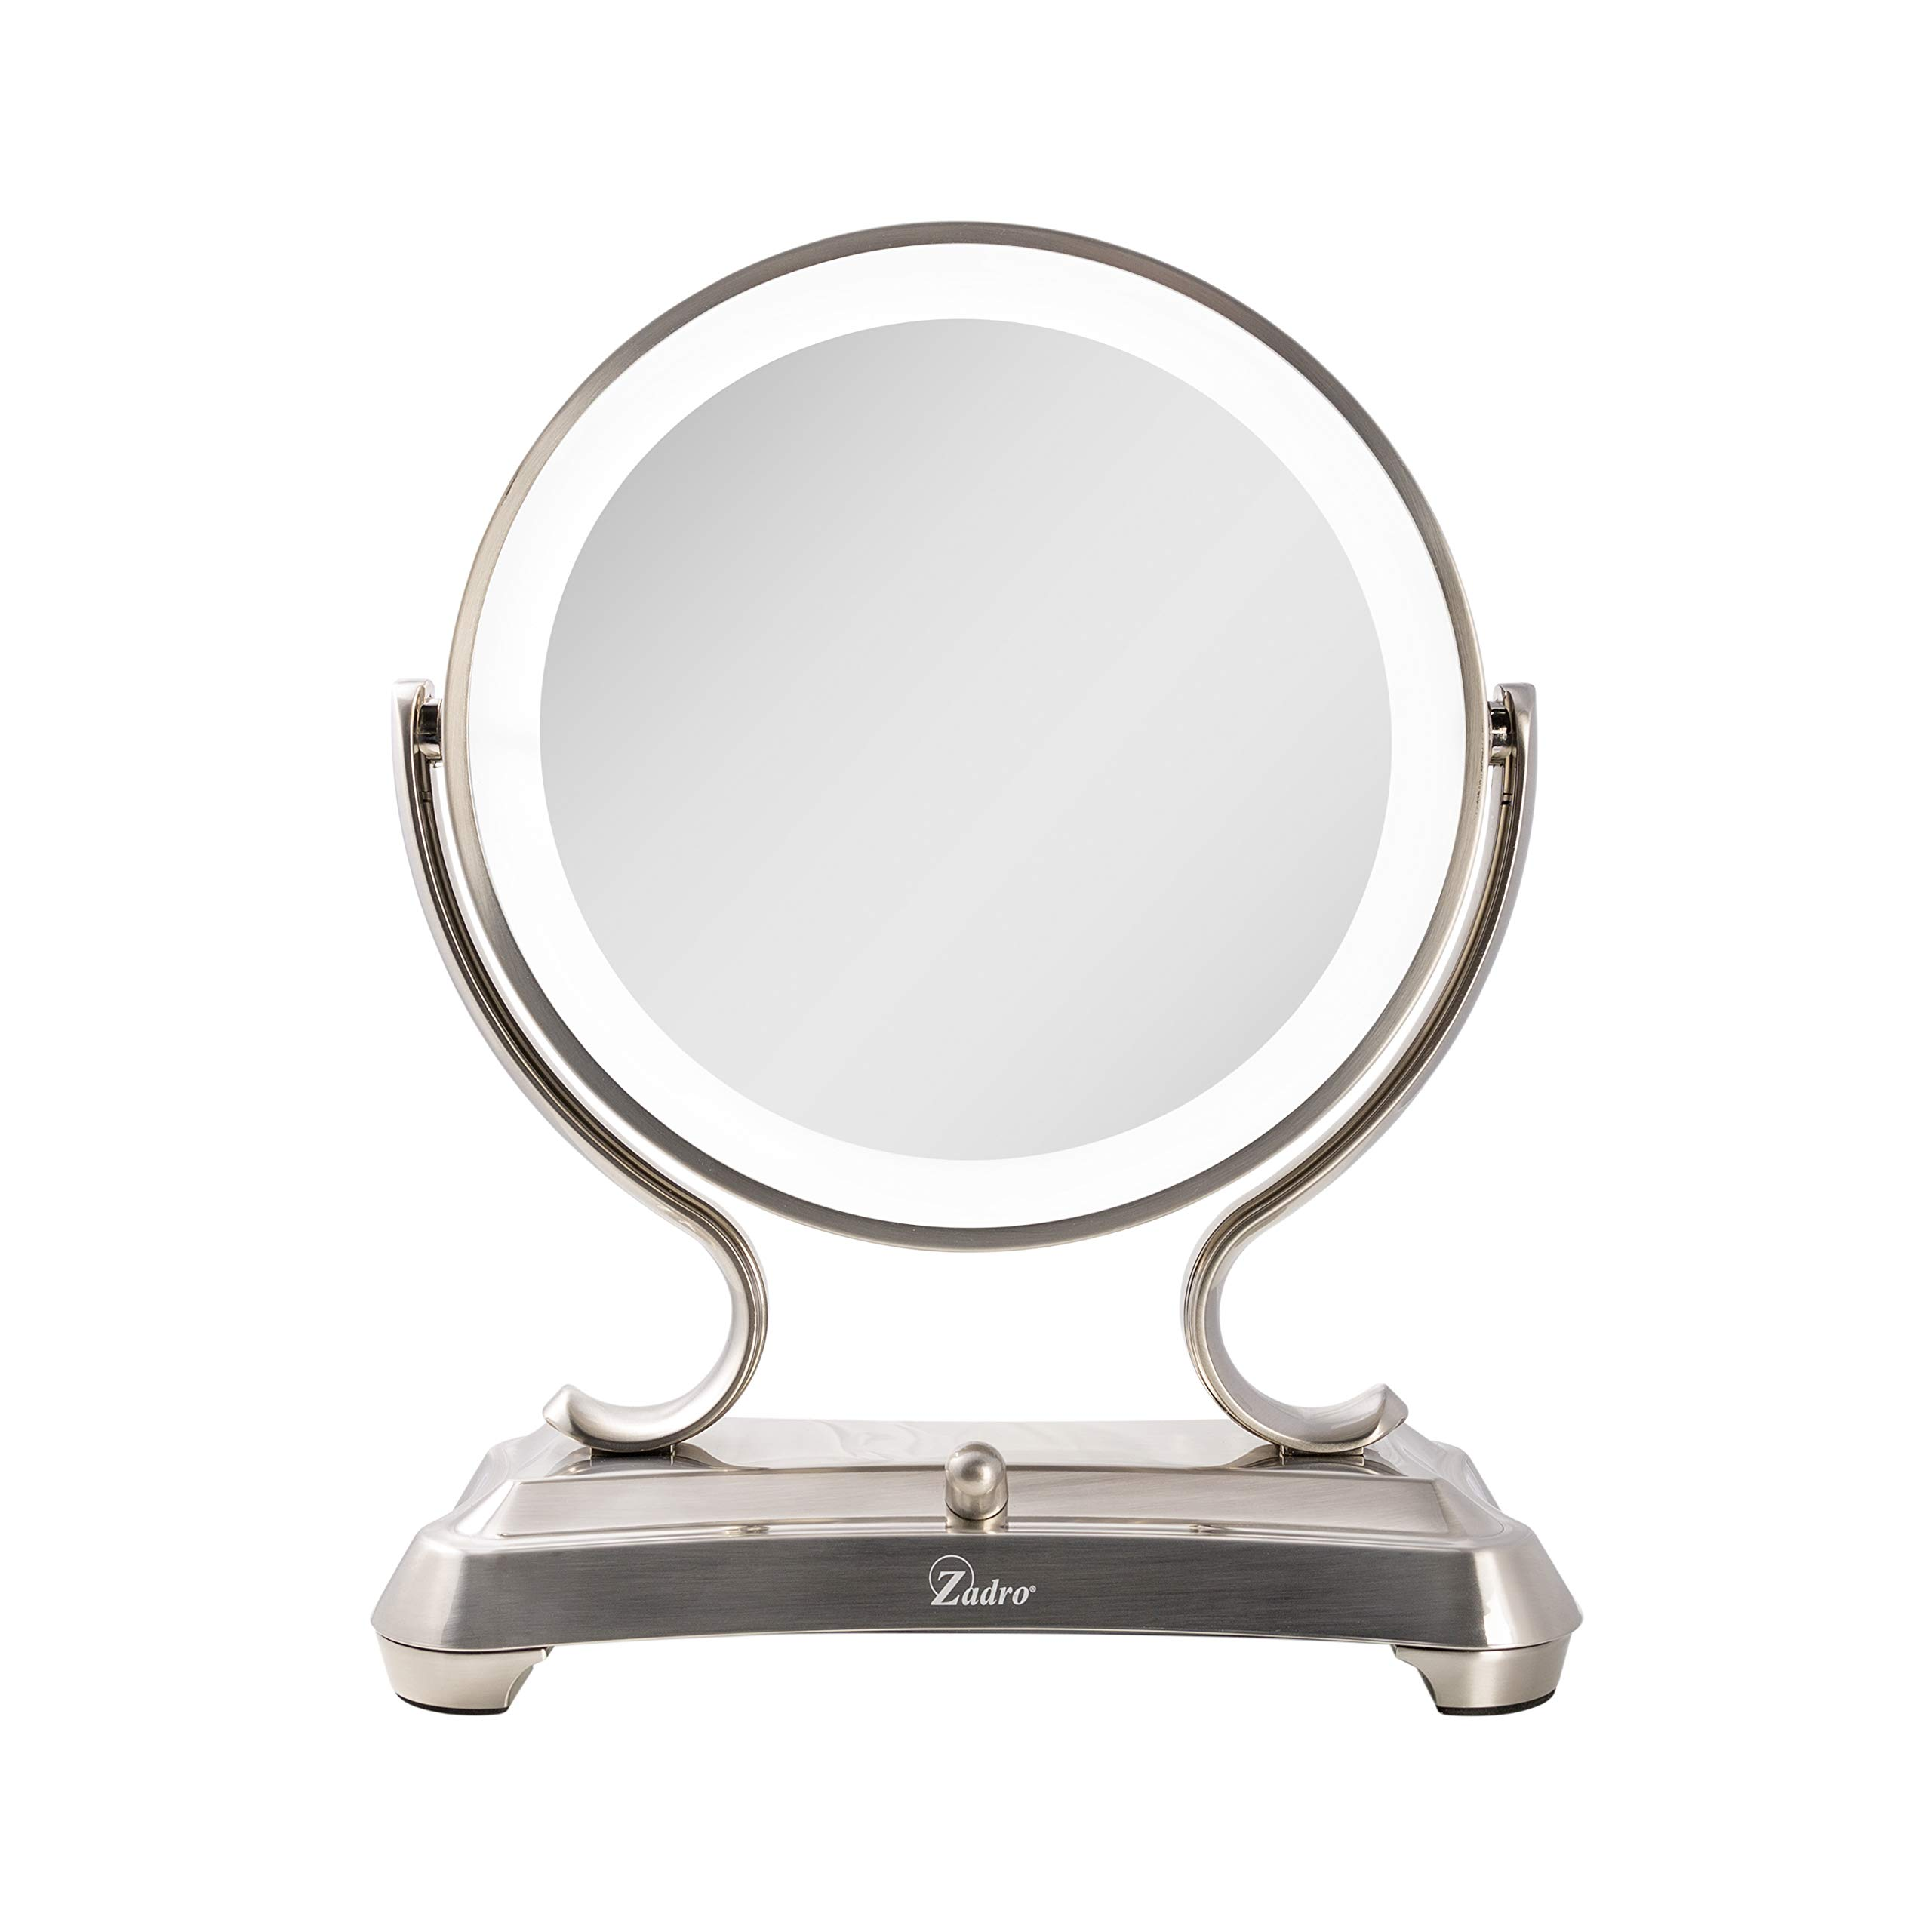 Zadro Products Zadro products surround light dual sided glamour 5x/1x magnification vanity mirror, satin nickel, Satin Nickel by Zadro